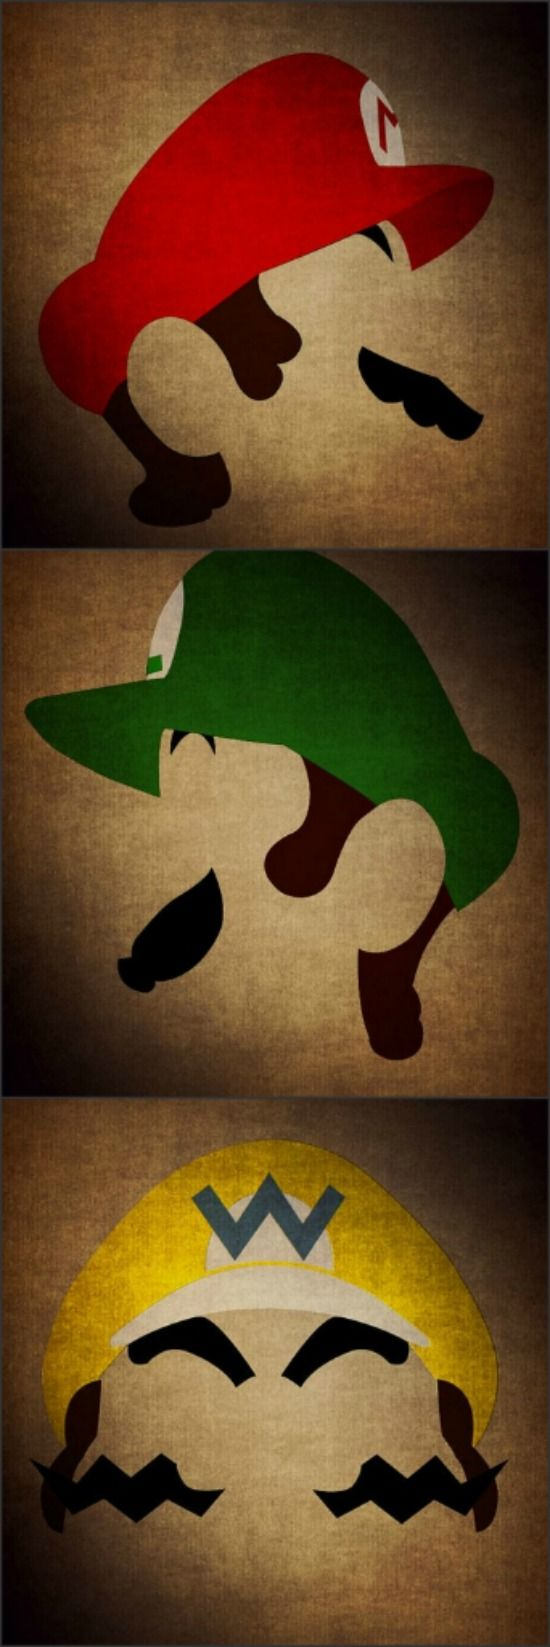 Super Mario Brothers Minimalist  Paintings